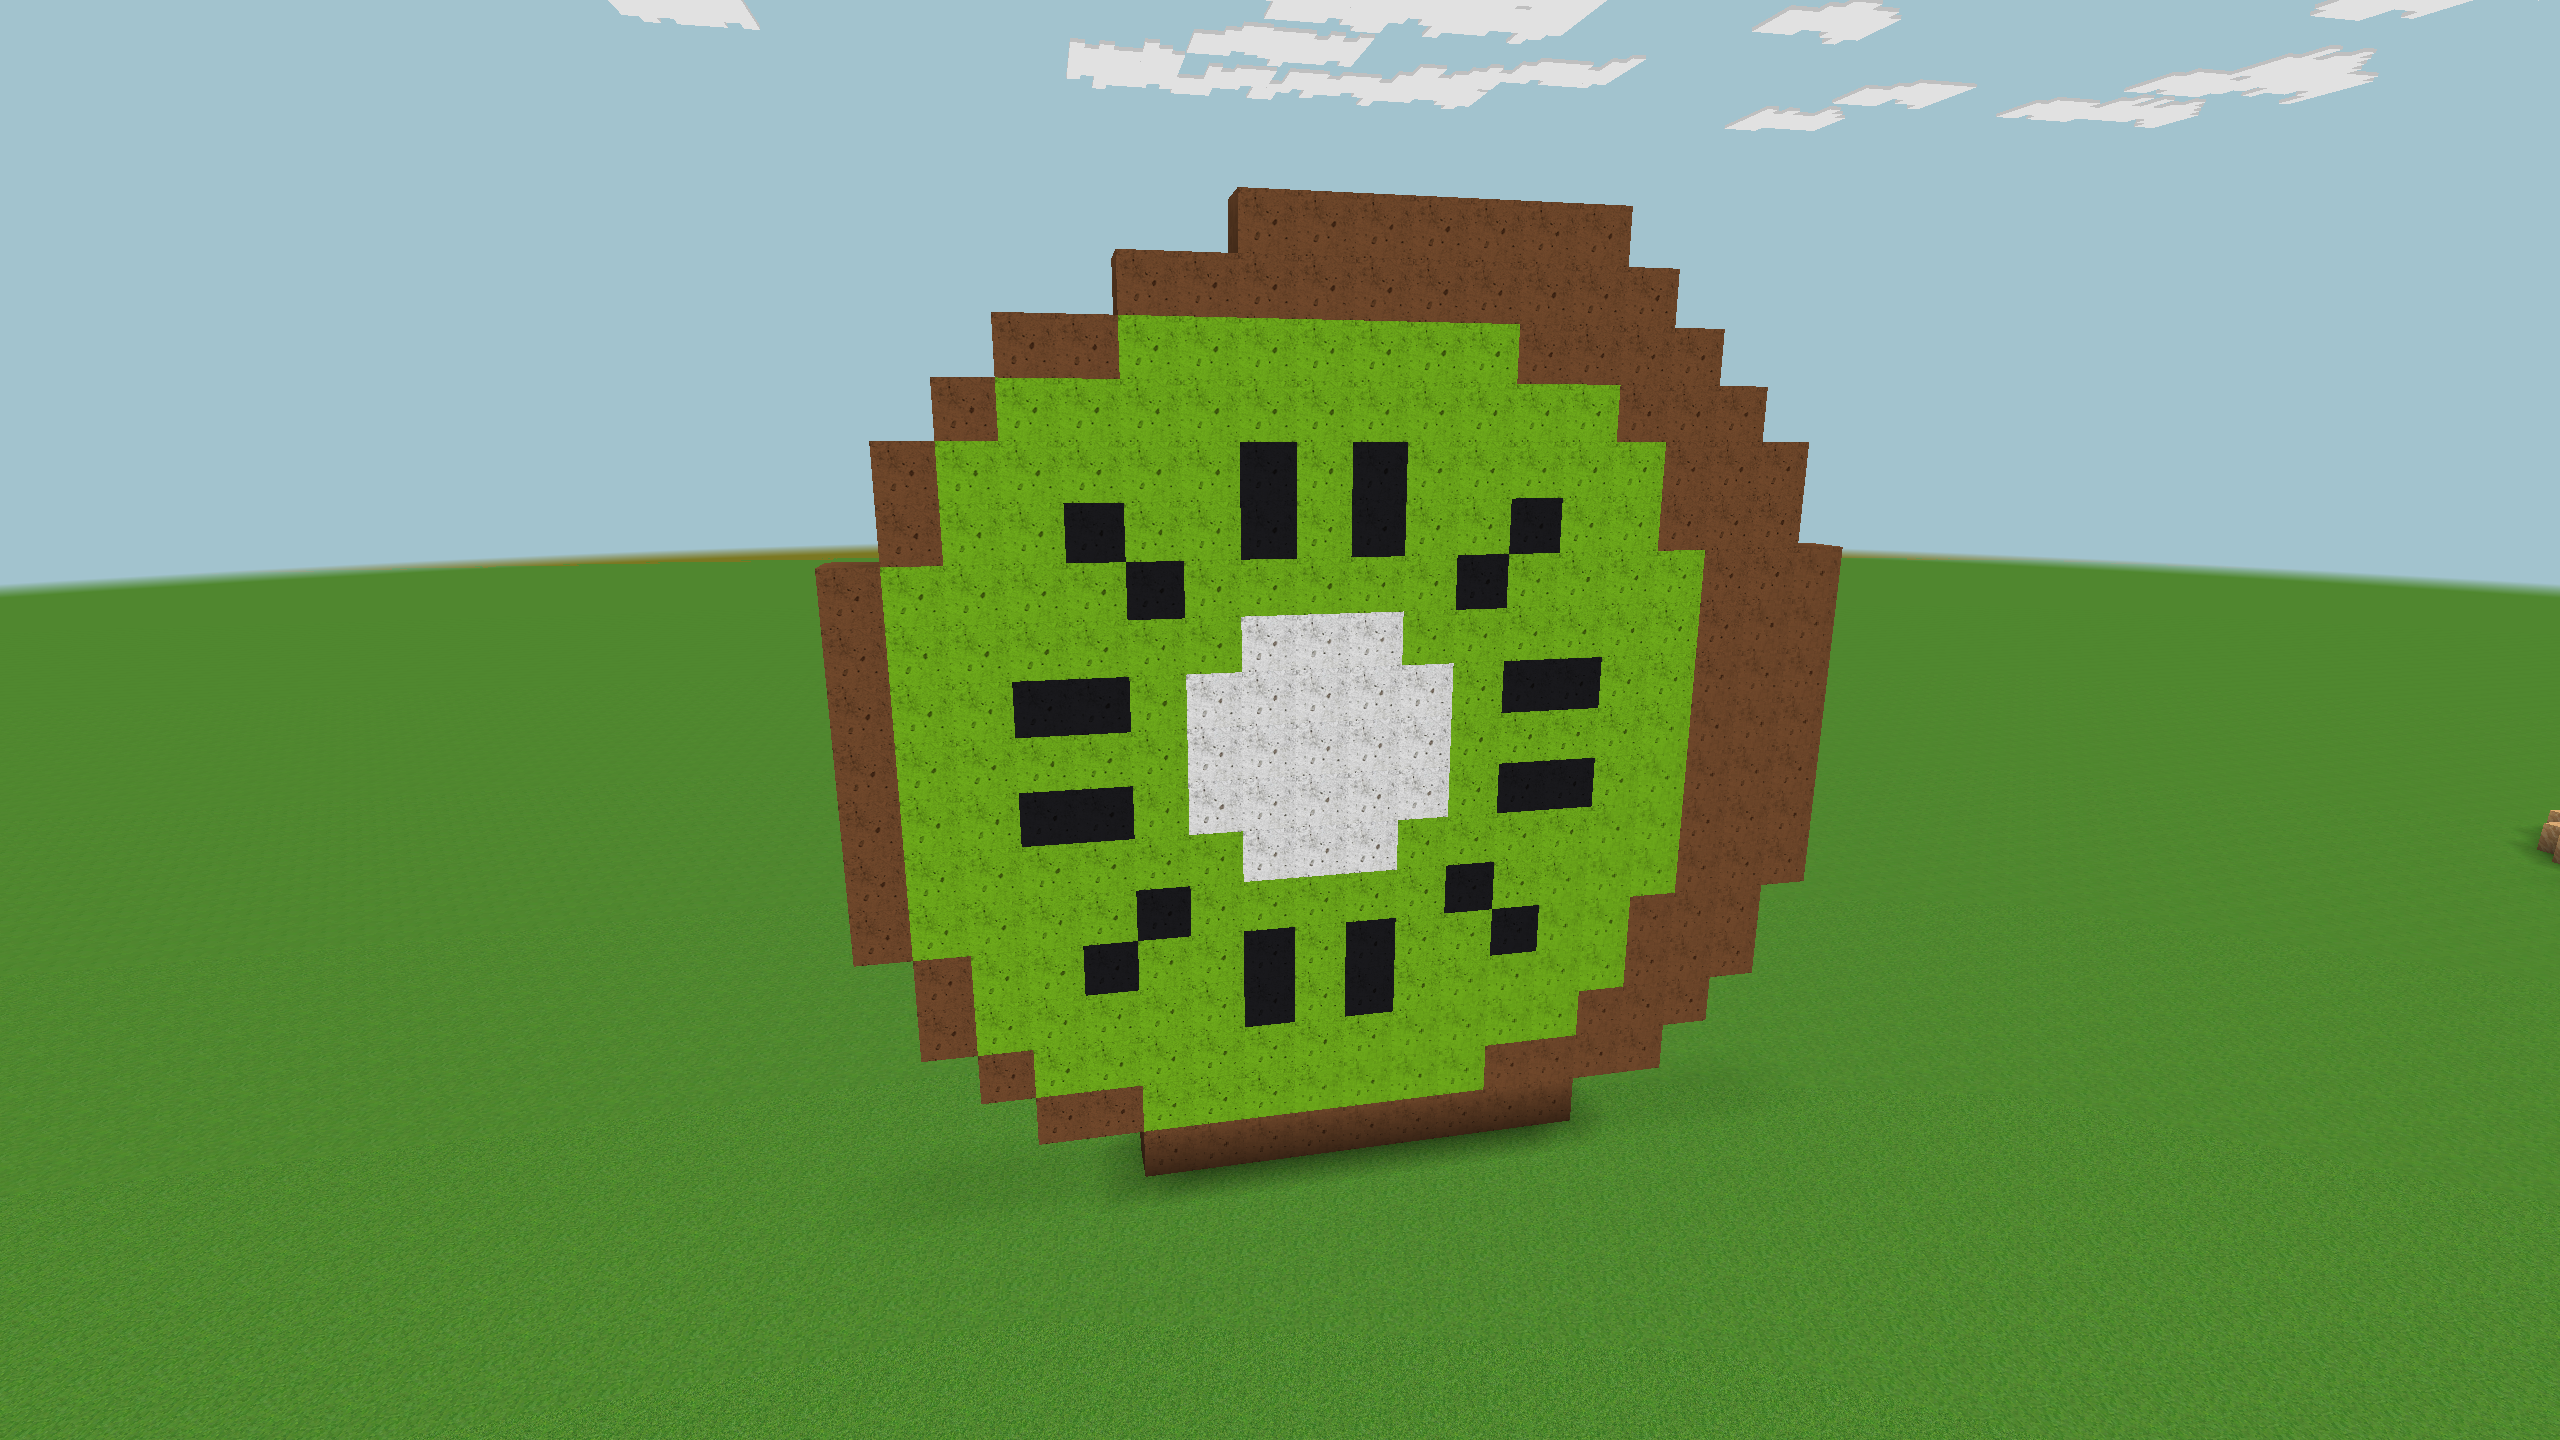 How To Make Pixel Art In Minecraft Bedrock Build A Big Kiwi For Summer Days In Realmcraft Minecraft Clone In 2020 Game Art Pixel Art Minecraft